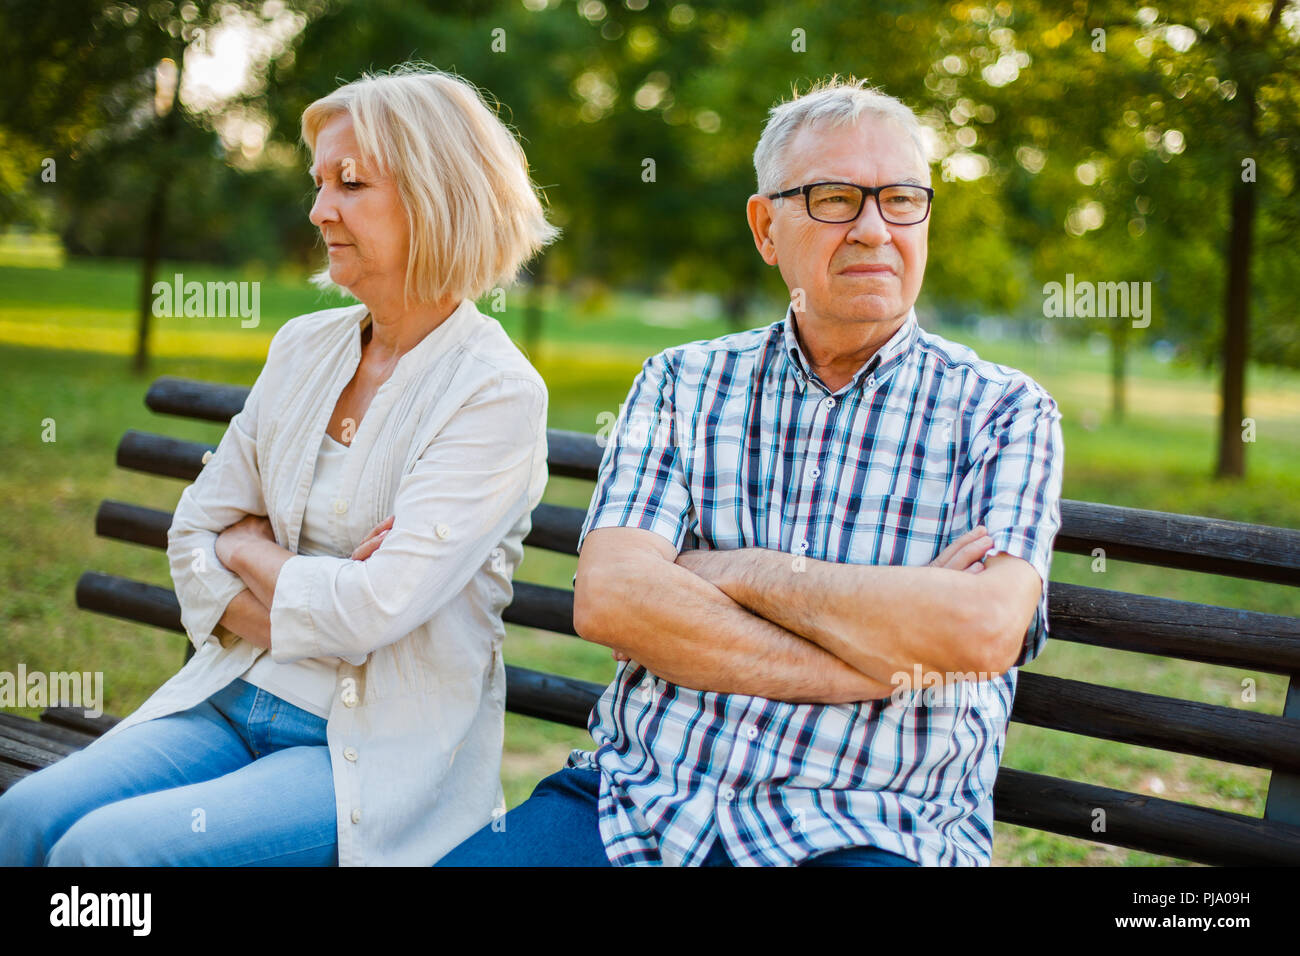 Senior couple is in dispute and not talking to each other. Stock Photo